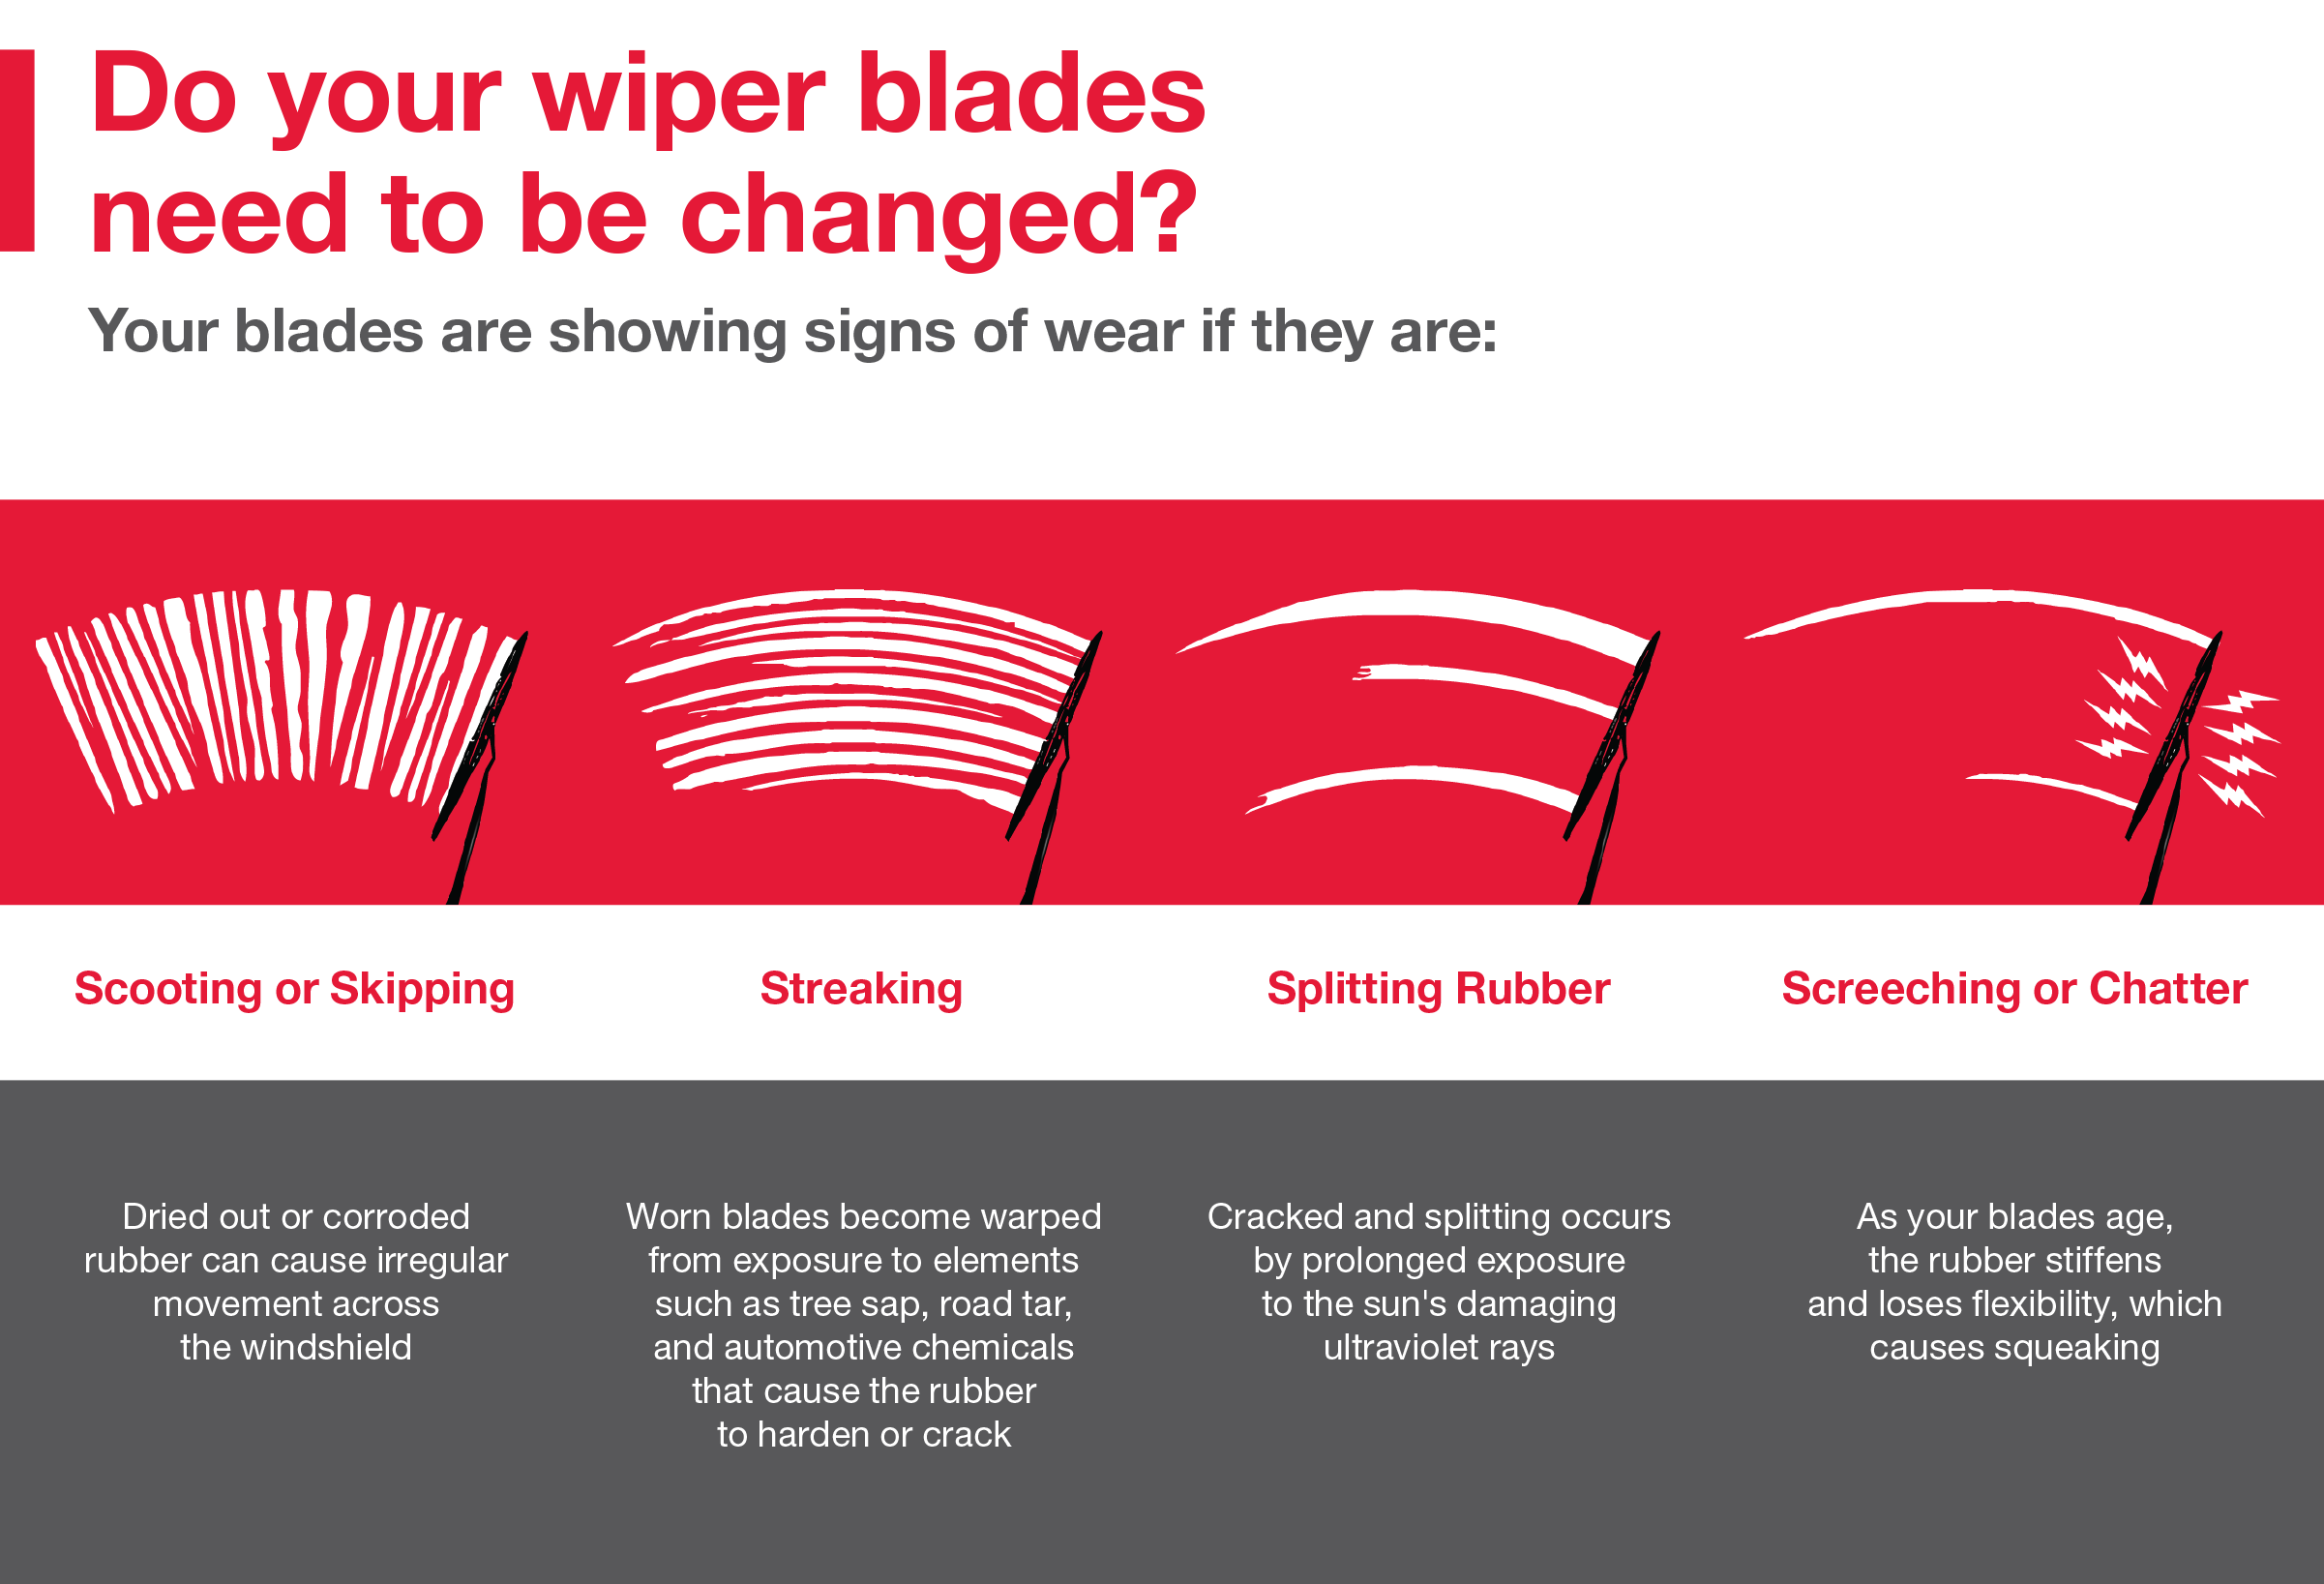 Do your wiper blades need to be changed? Call your local dealer for more info: (575) 523-5566